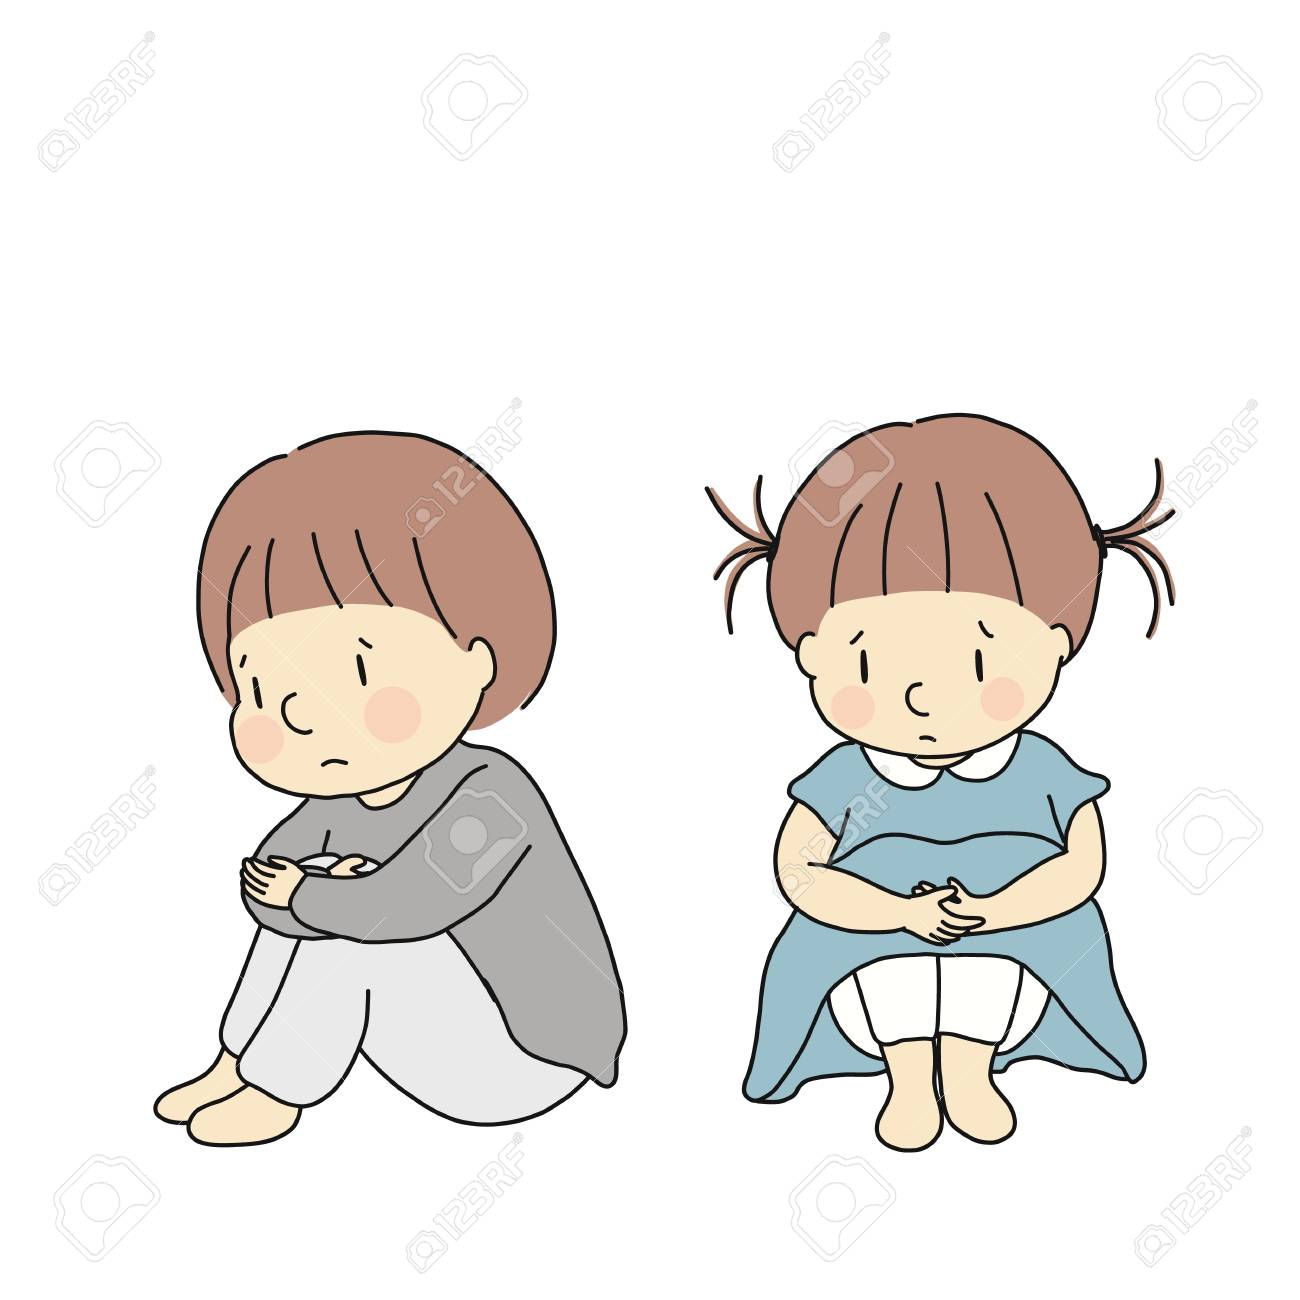 Vector vector illustration of little kids hugging knees feeling sad and anxious child emotion problem concept cartoon character drawing